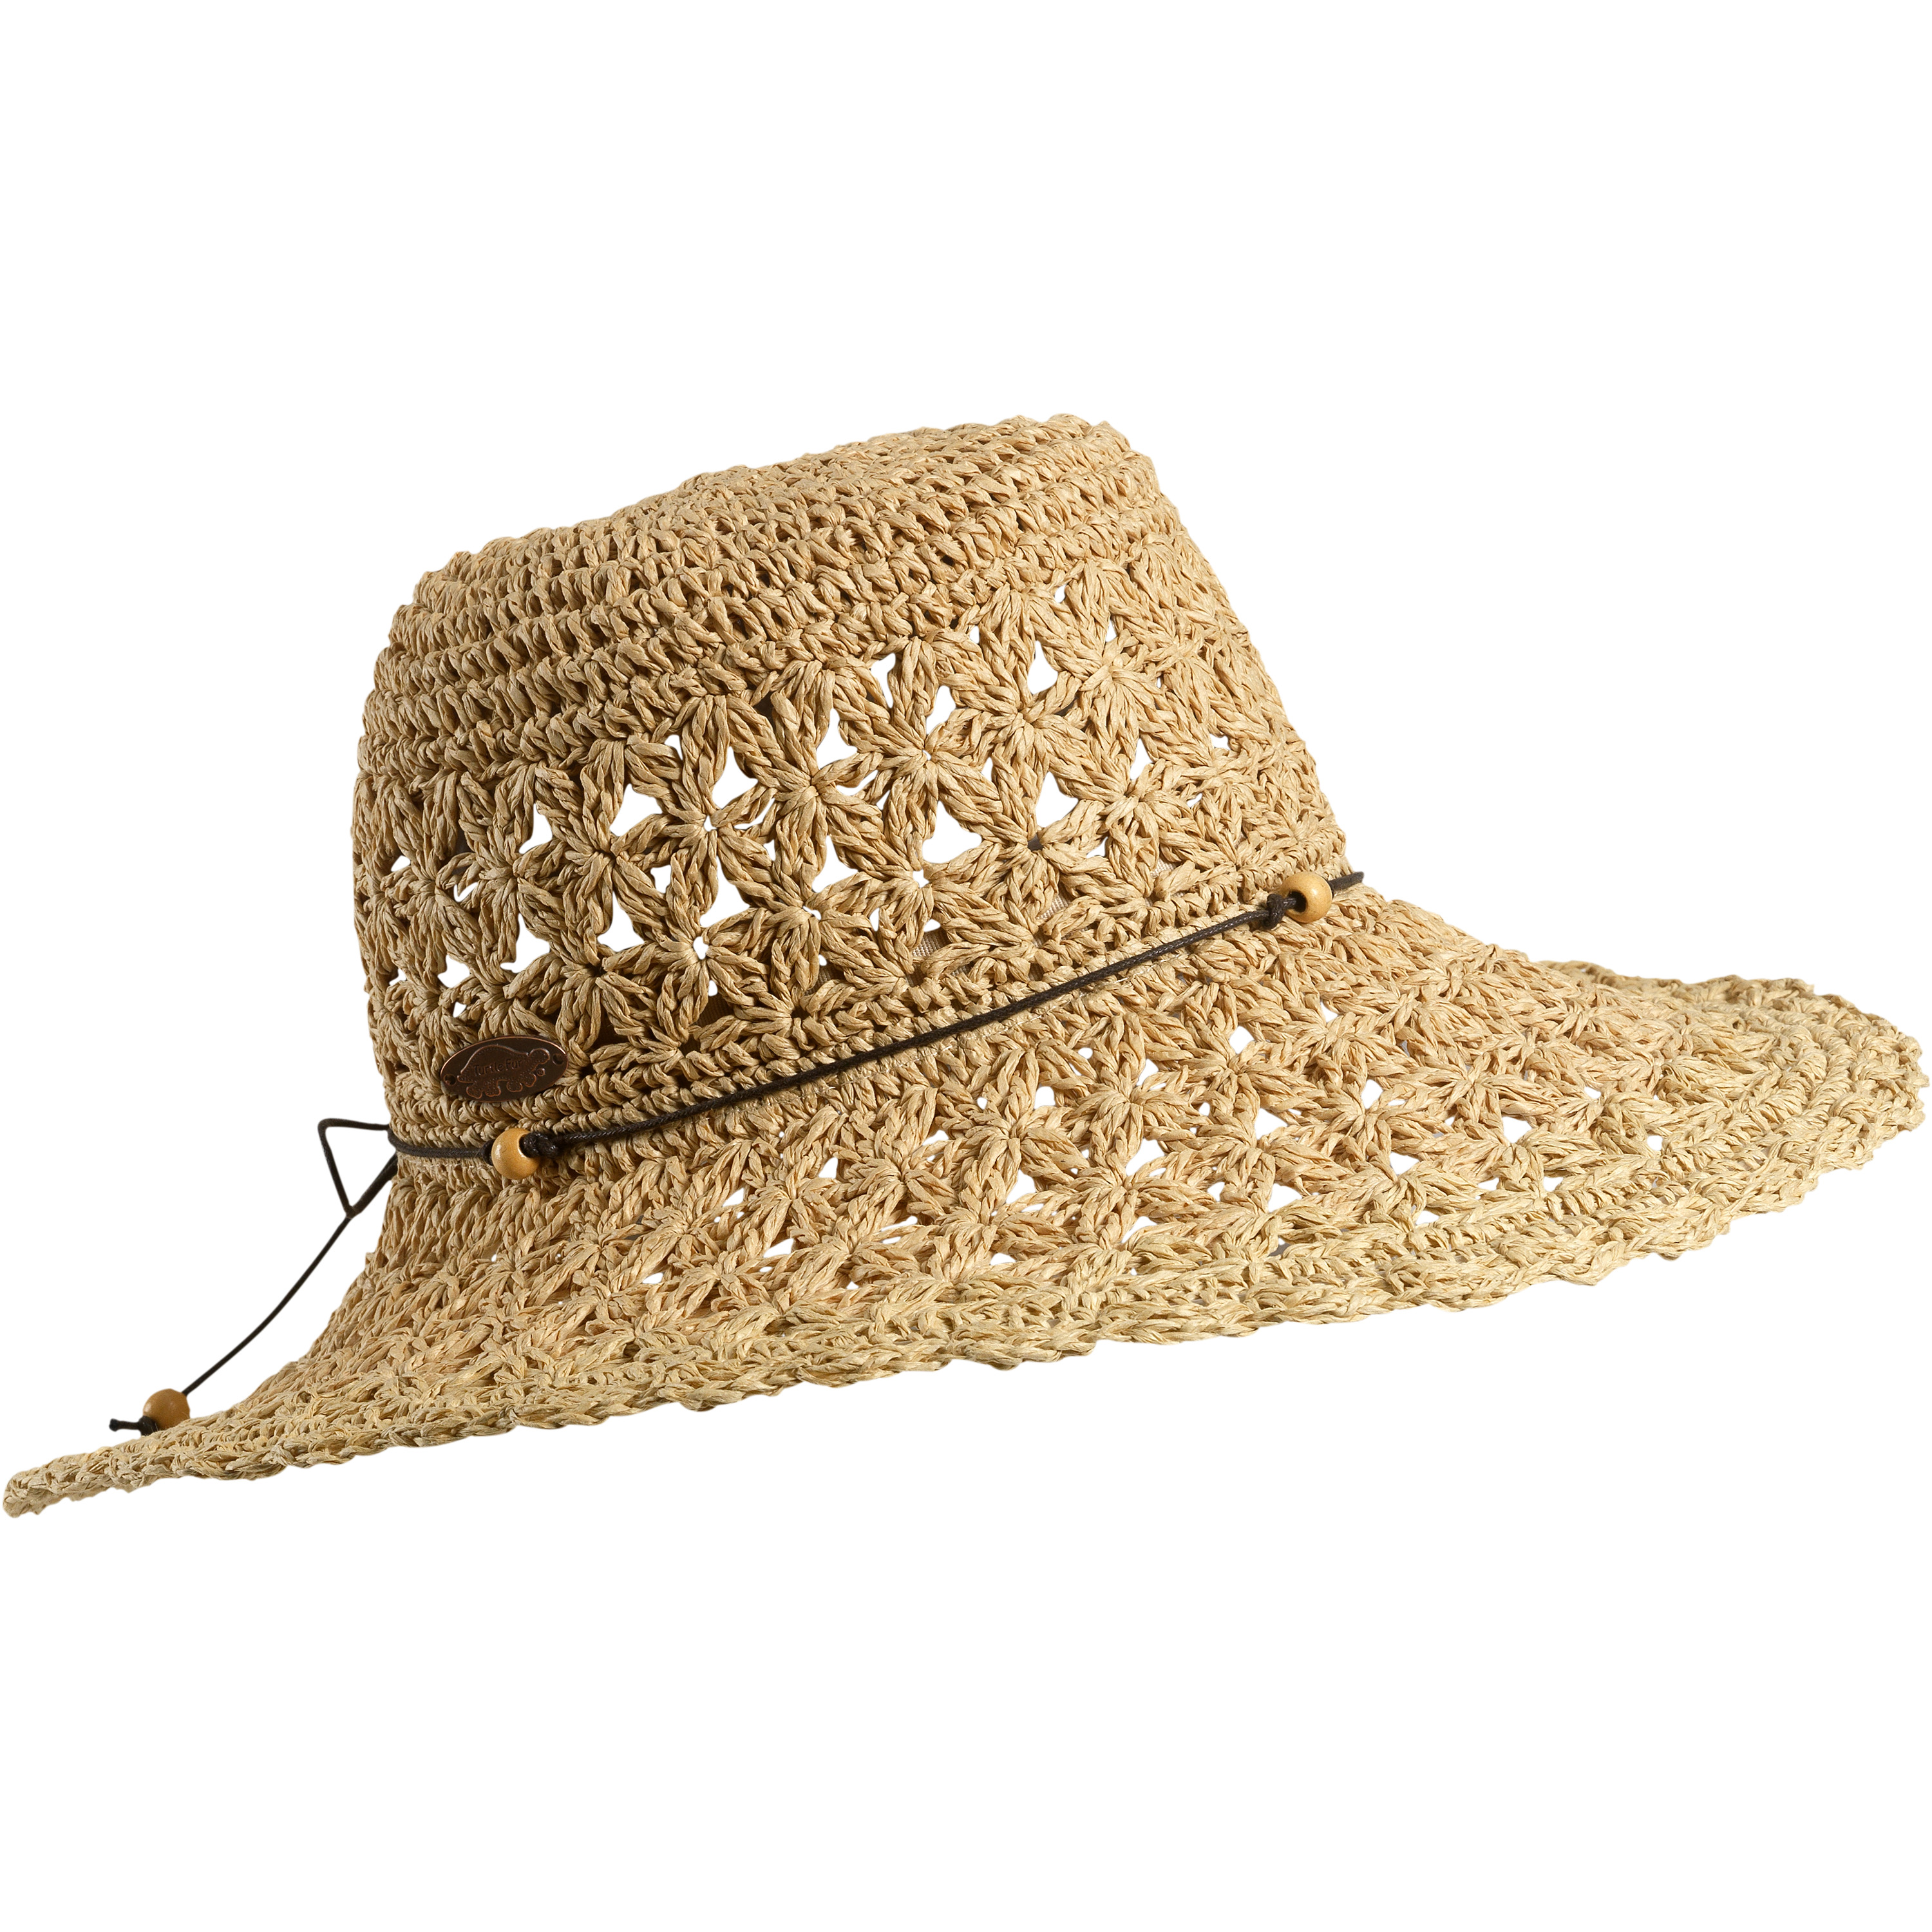 Floppy Straw Hat Large Brim Sun Hat Women Summer Beach Cap Foldable Fedora Hat, Find Complete Details about Floppy Straw Hat Large Brim Sun Hat Women Summer Beach Cap Foldable Fedora Hat,Fedora Hat,Hat Summer,Straw Fedora Hat from Straw Hats Supplier or Manufacturer-Qingdao Beaufy Arts And Crafts Co., Ltd.